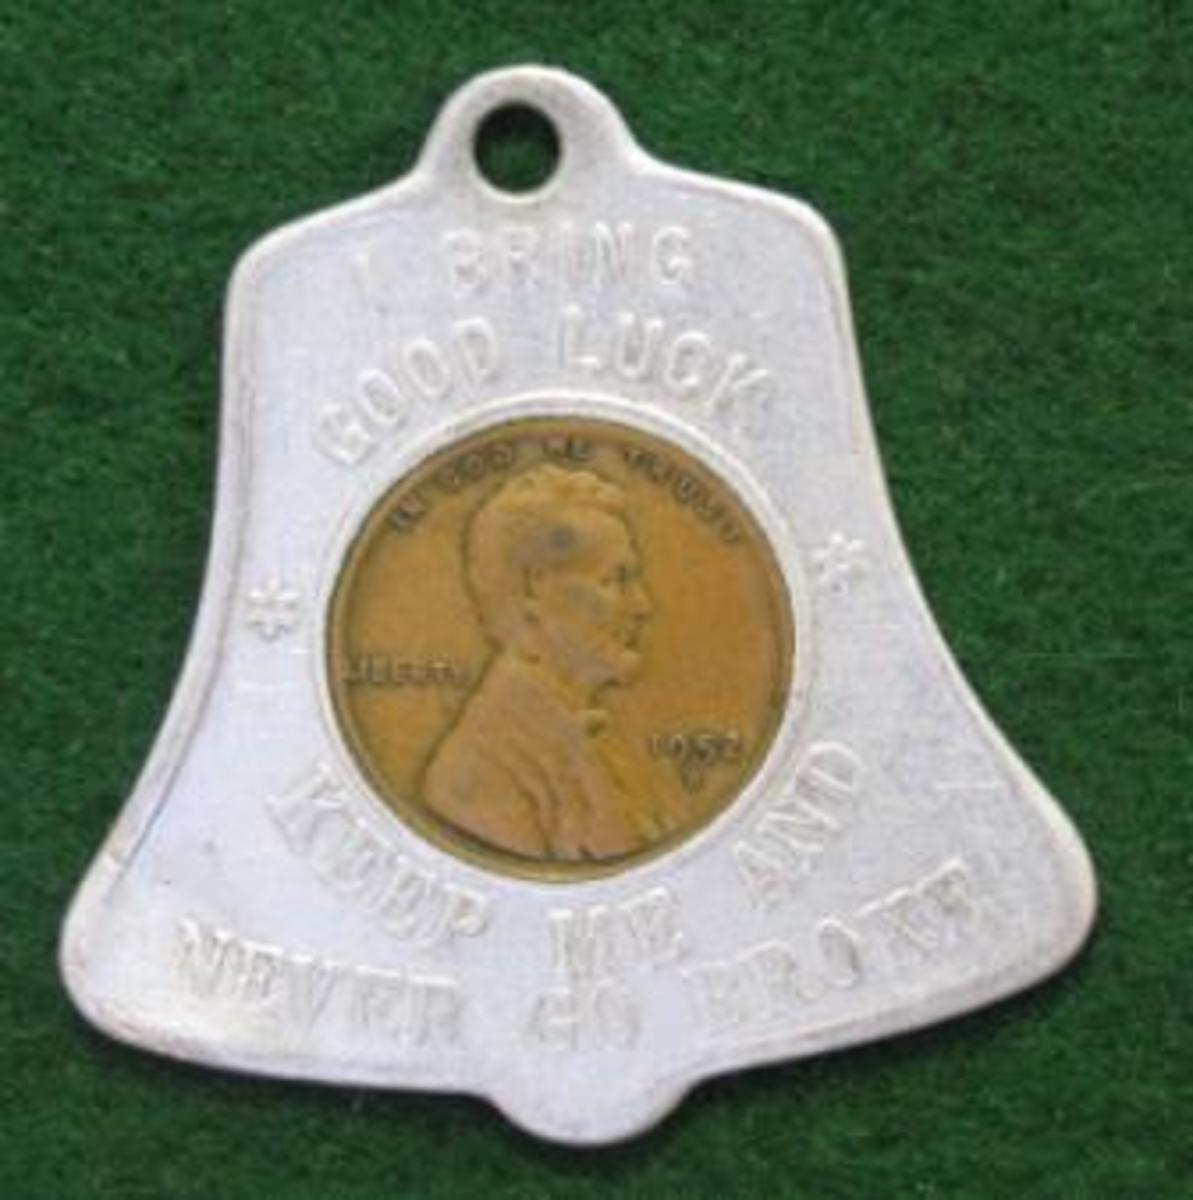 """1952-D cent inside a bell-shaped holder. The obverse reads, """"I BRING GOOD LUCK/KEEP ME AND NEVER GO BROKE."""" The hole at the top allows it to be used as a key chain fob."""